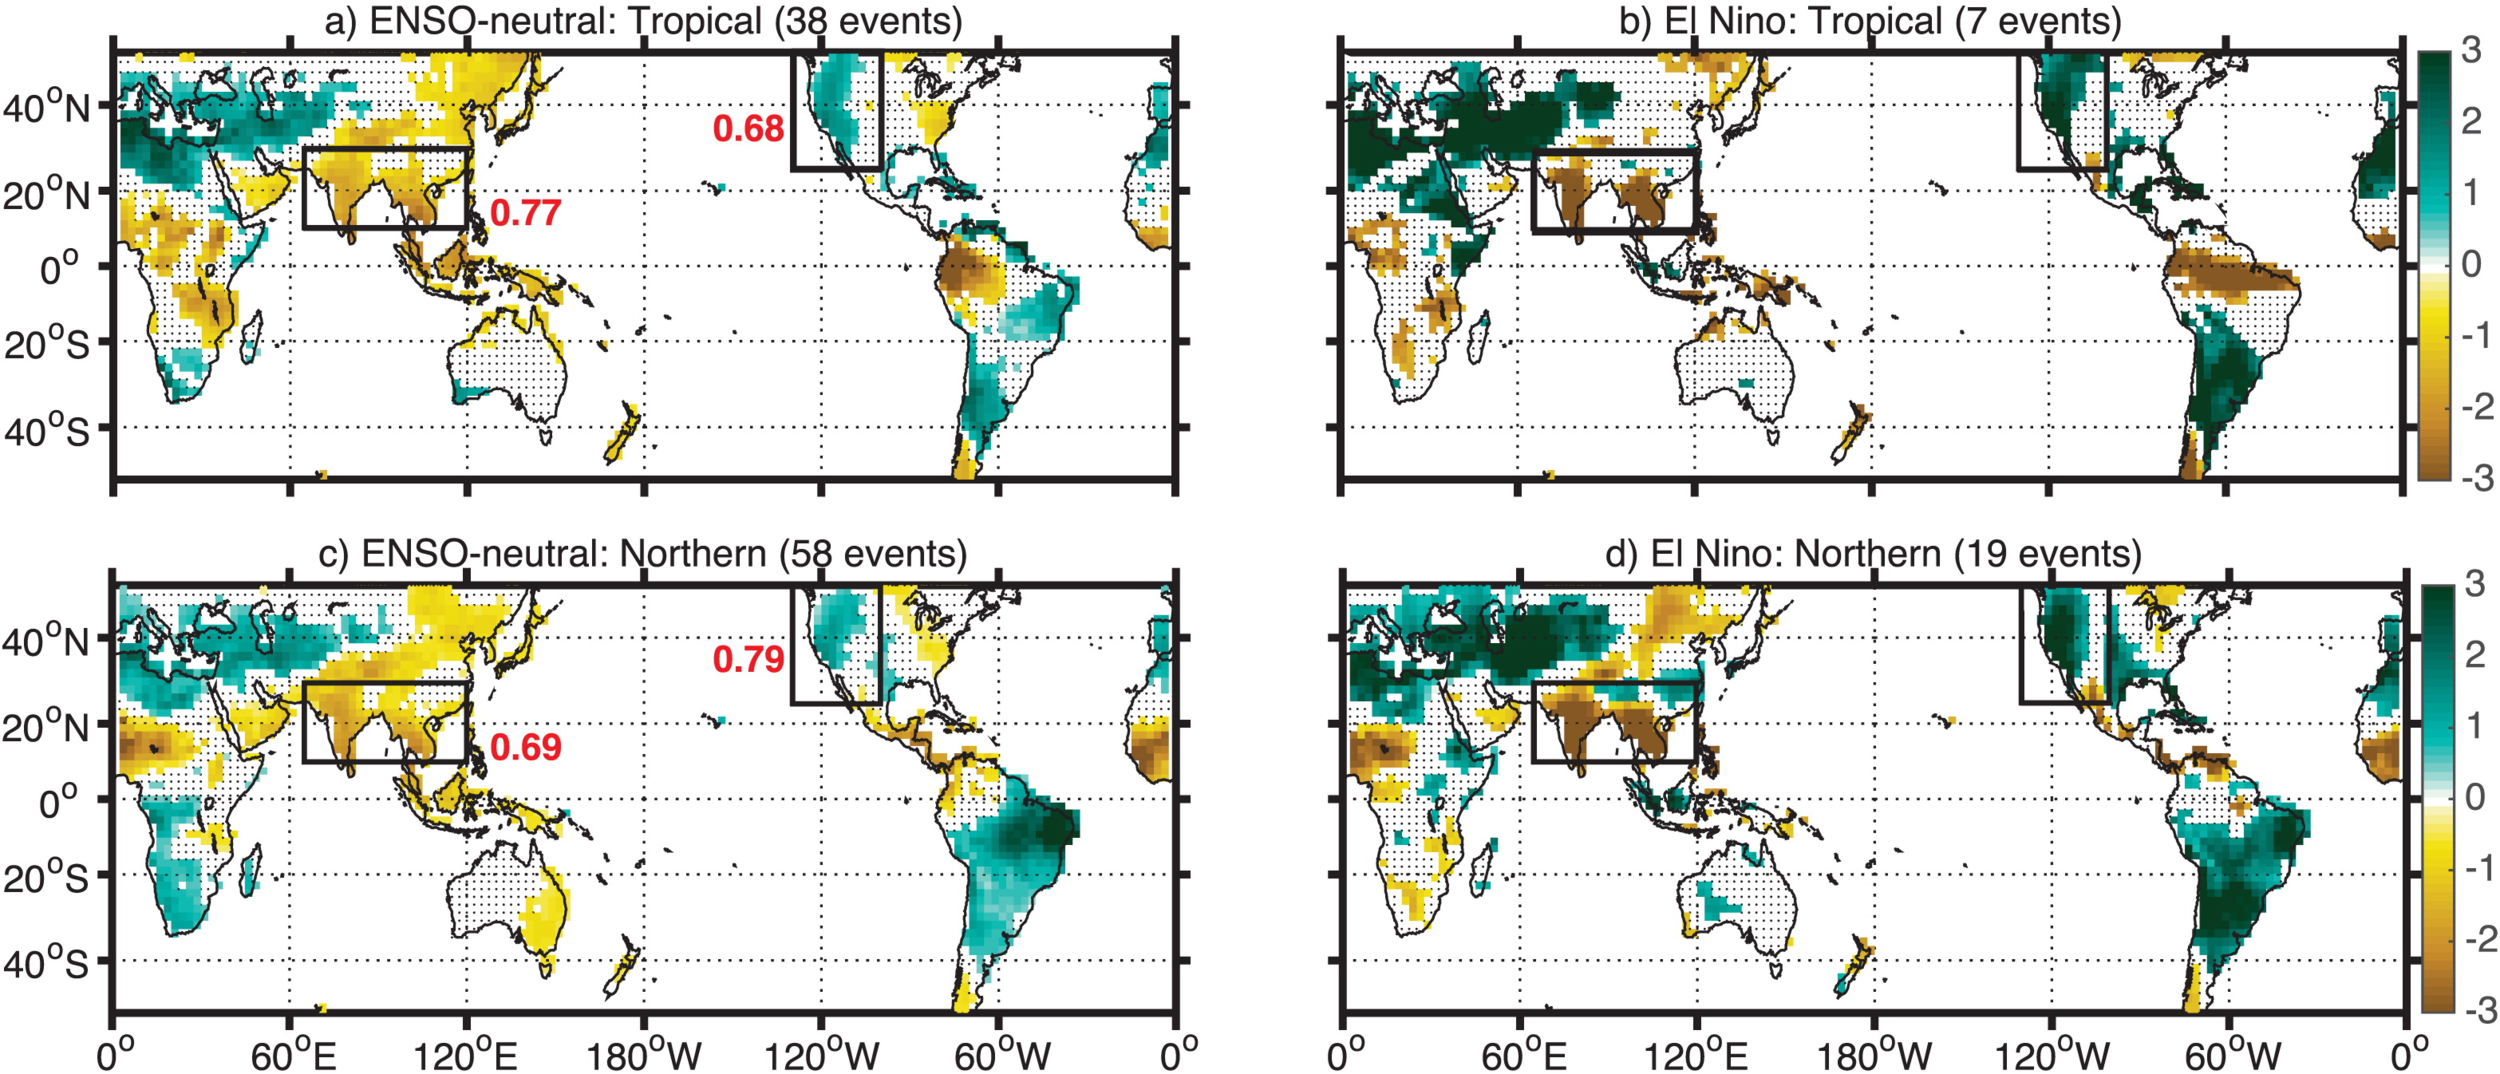 Figure 7 from Stevenson et al. (2016), Journal of Climate  PDSI composites for Tropical and Northern eruptions during JJA +1. (a) Tropical eruptions followed by ENSO-neutral conditions during DJF +0 to +1. (b) As in (a), but for eruptions followed by El Niño conditions. (c) Northern eruptions followed by ENSO-neutral conditions during DJF +0 to +1. (d) As in (c), but for eruptions followed by El Niño conditions. Boxes indicate the southwest United States and monsoon Asia regions discussed in the text, and the numbers alongside are the pattern correlations between the PDSI composite and the El Niño teleconnection pattern over the appropriate region. Boldface red text indicates a pattern correlation significant at 95% relative to internal variability, as computed via a Wilcoxon rank-sum test.